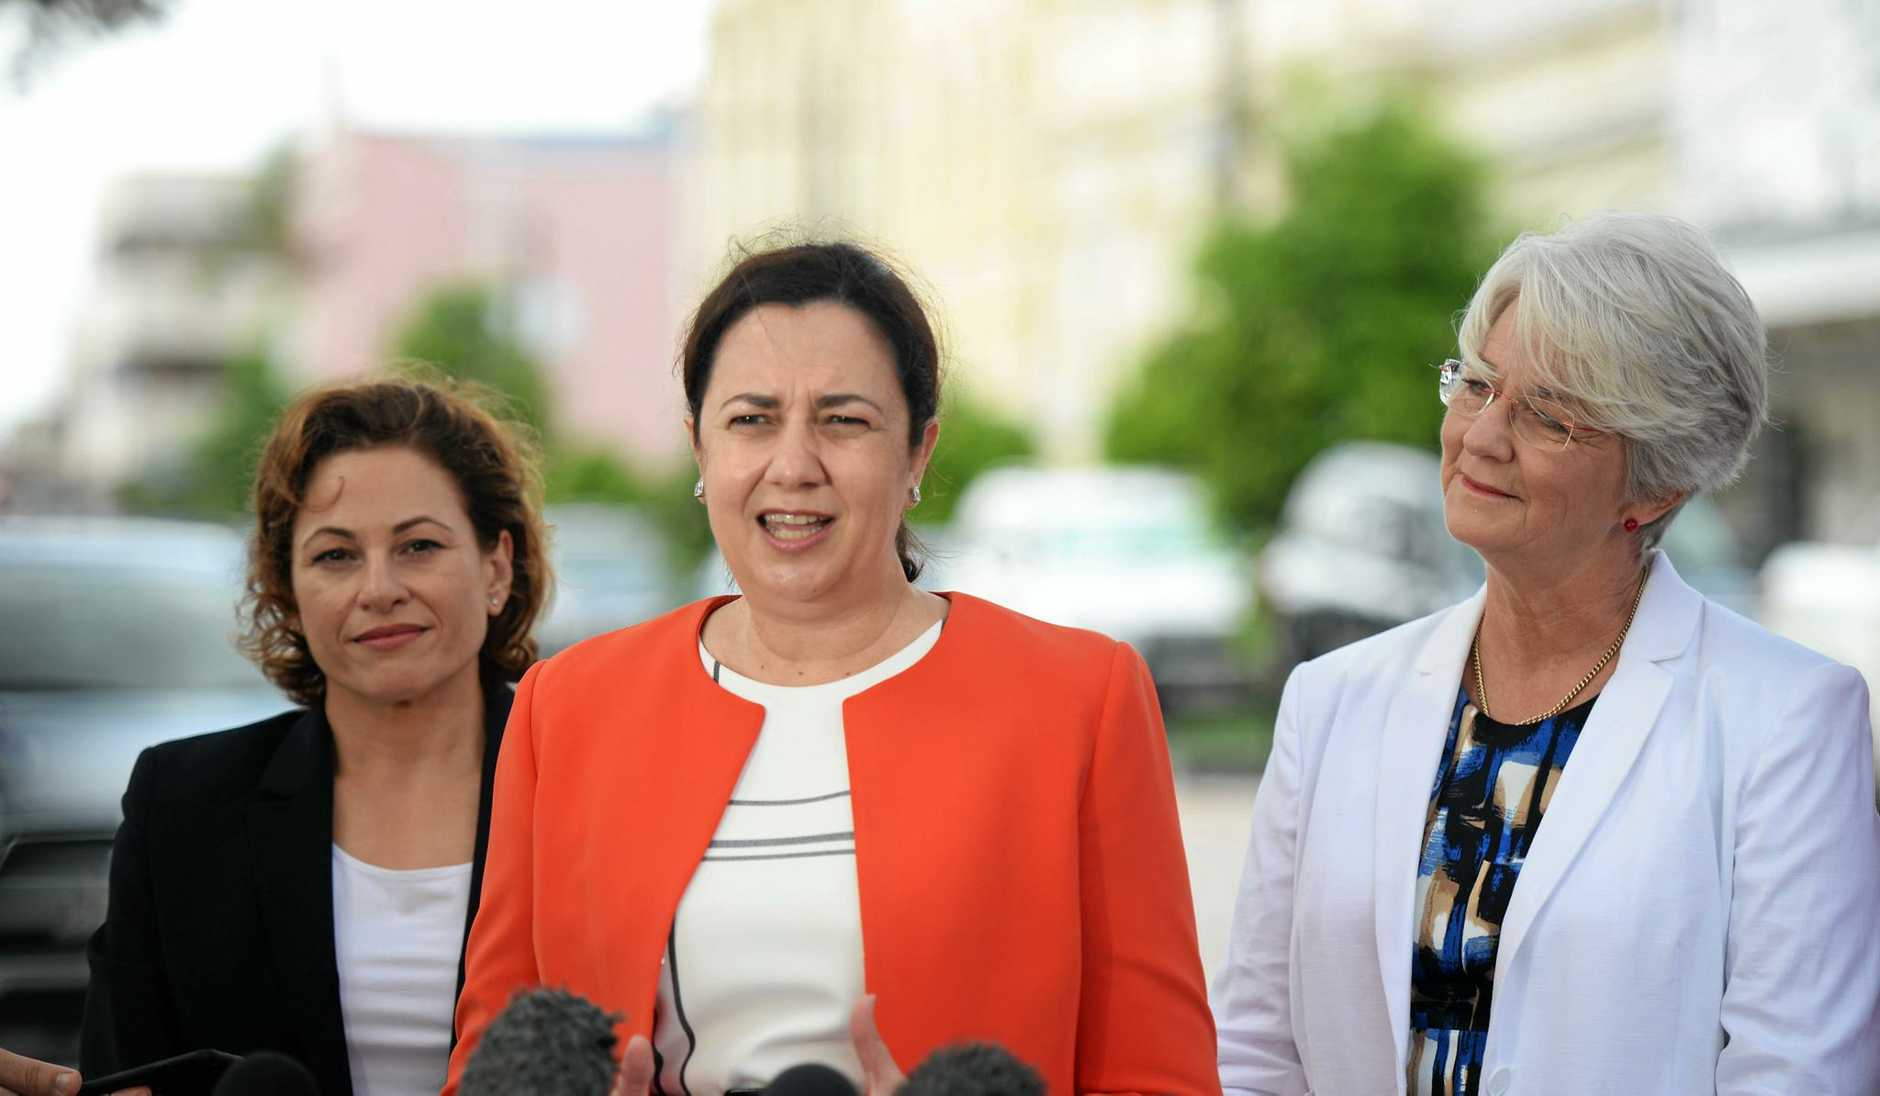 Premier Annastacia Palaszczuk and Deputy Premier Jackie Trad joined Rockhampton Region Mayor Margaret Strelow to officially launch the CBD Redevelopment Framework this morning.